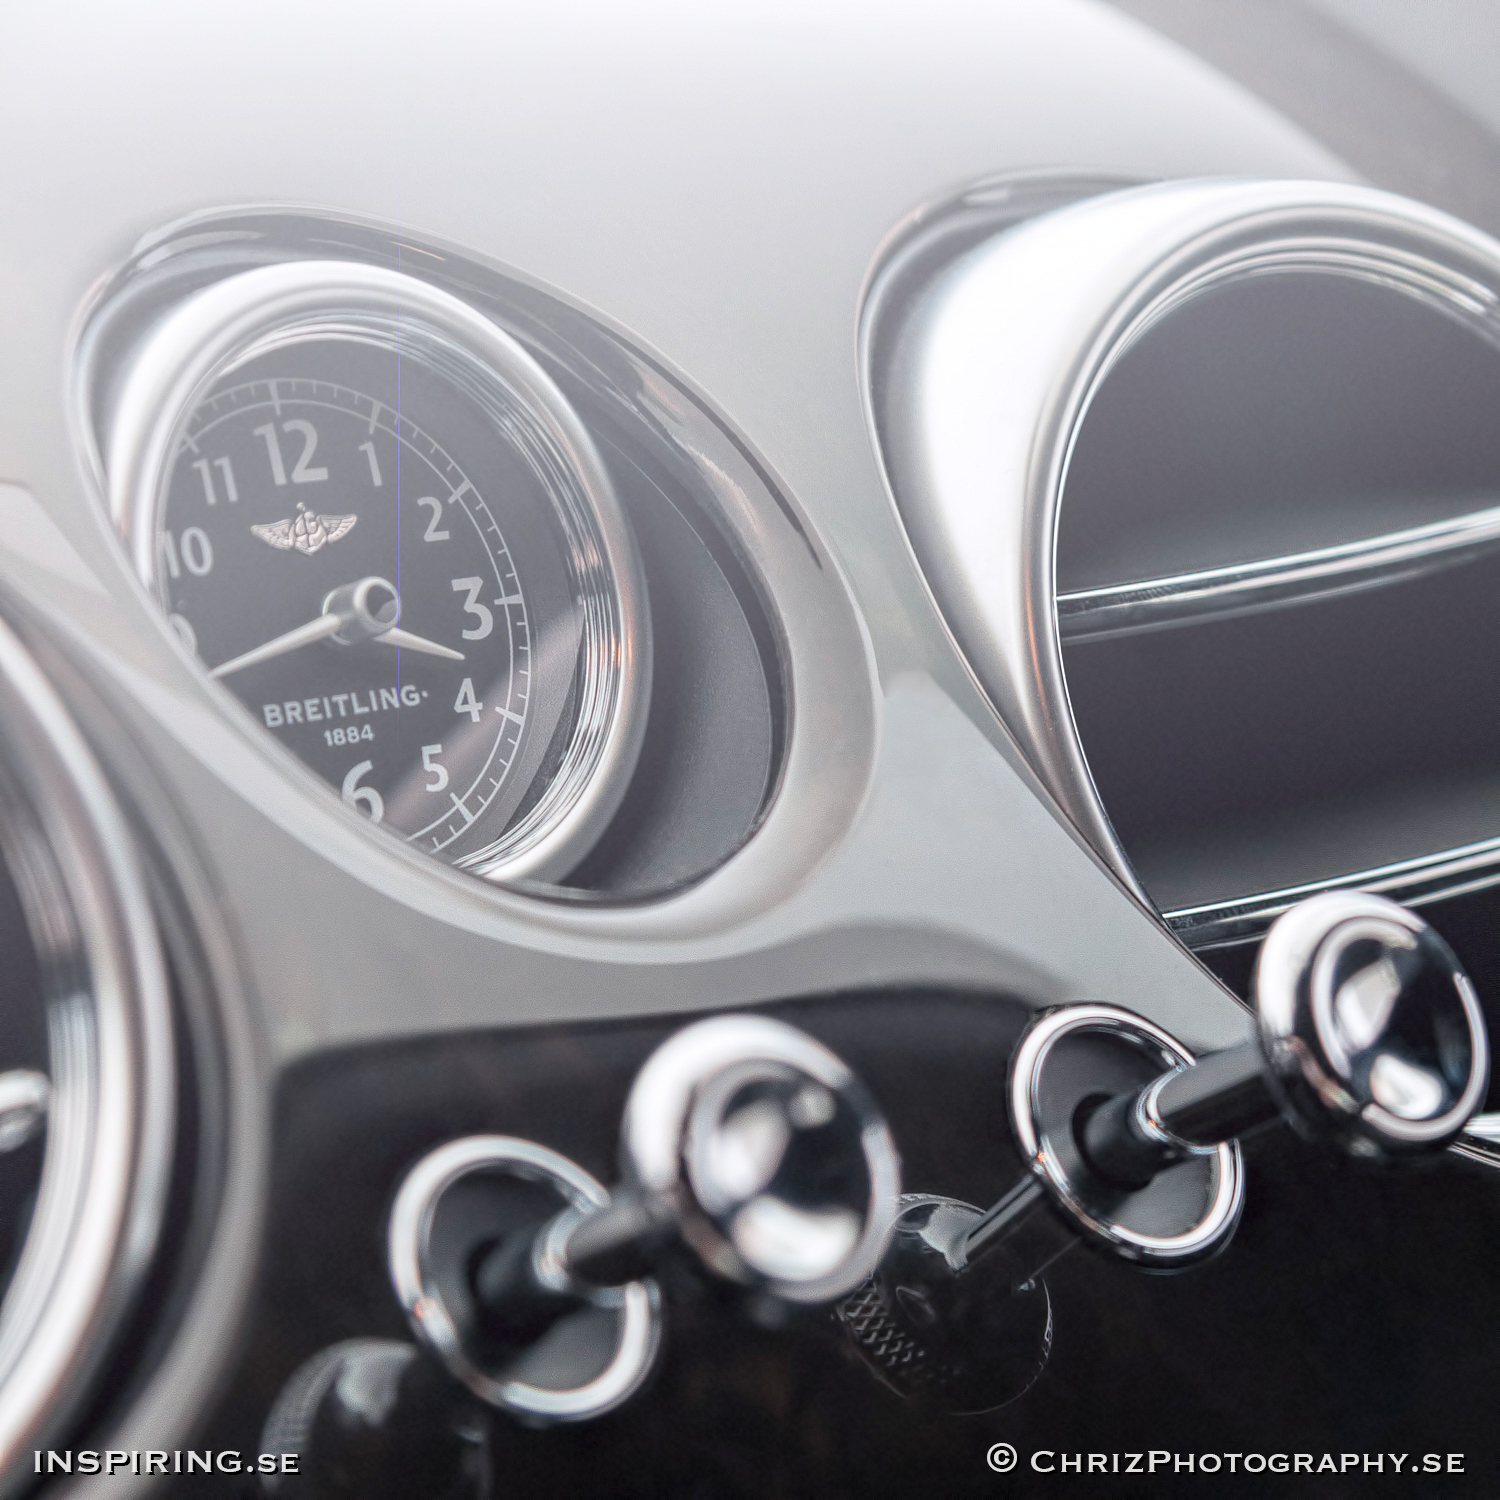 Inspiring.se_OUTTHERE_copyright_ChrizPhotography.se_624_Bentley_Breitling_int.jpg